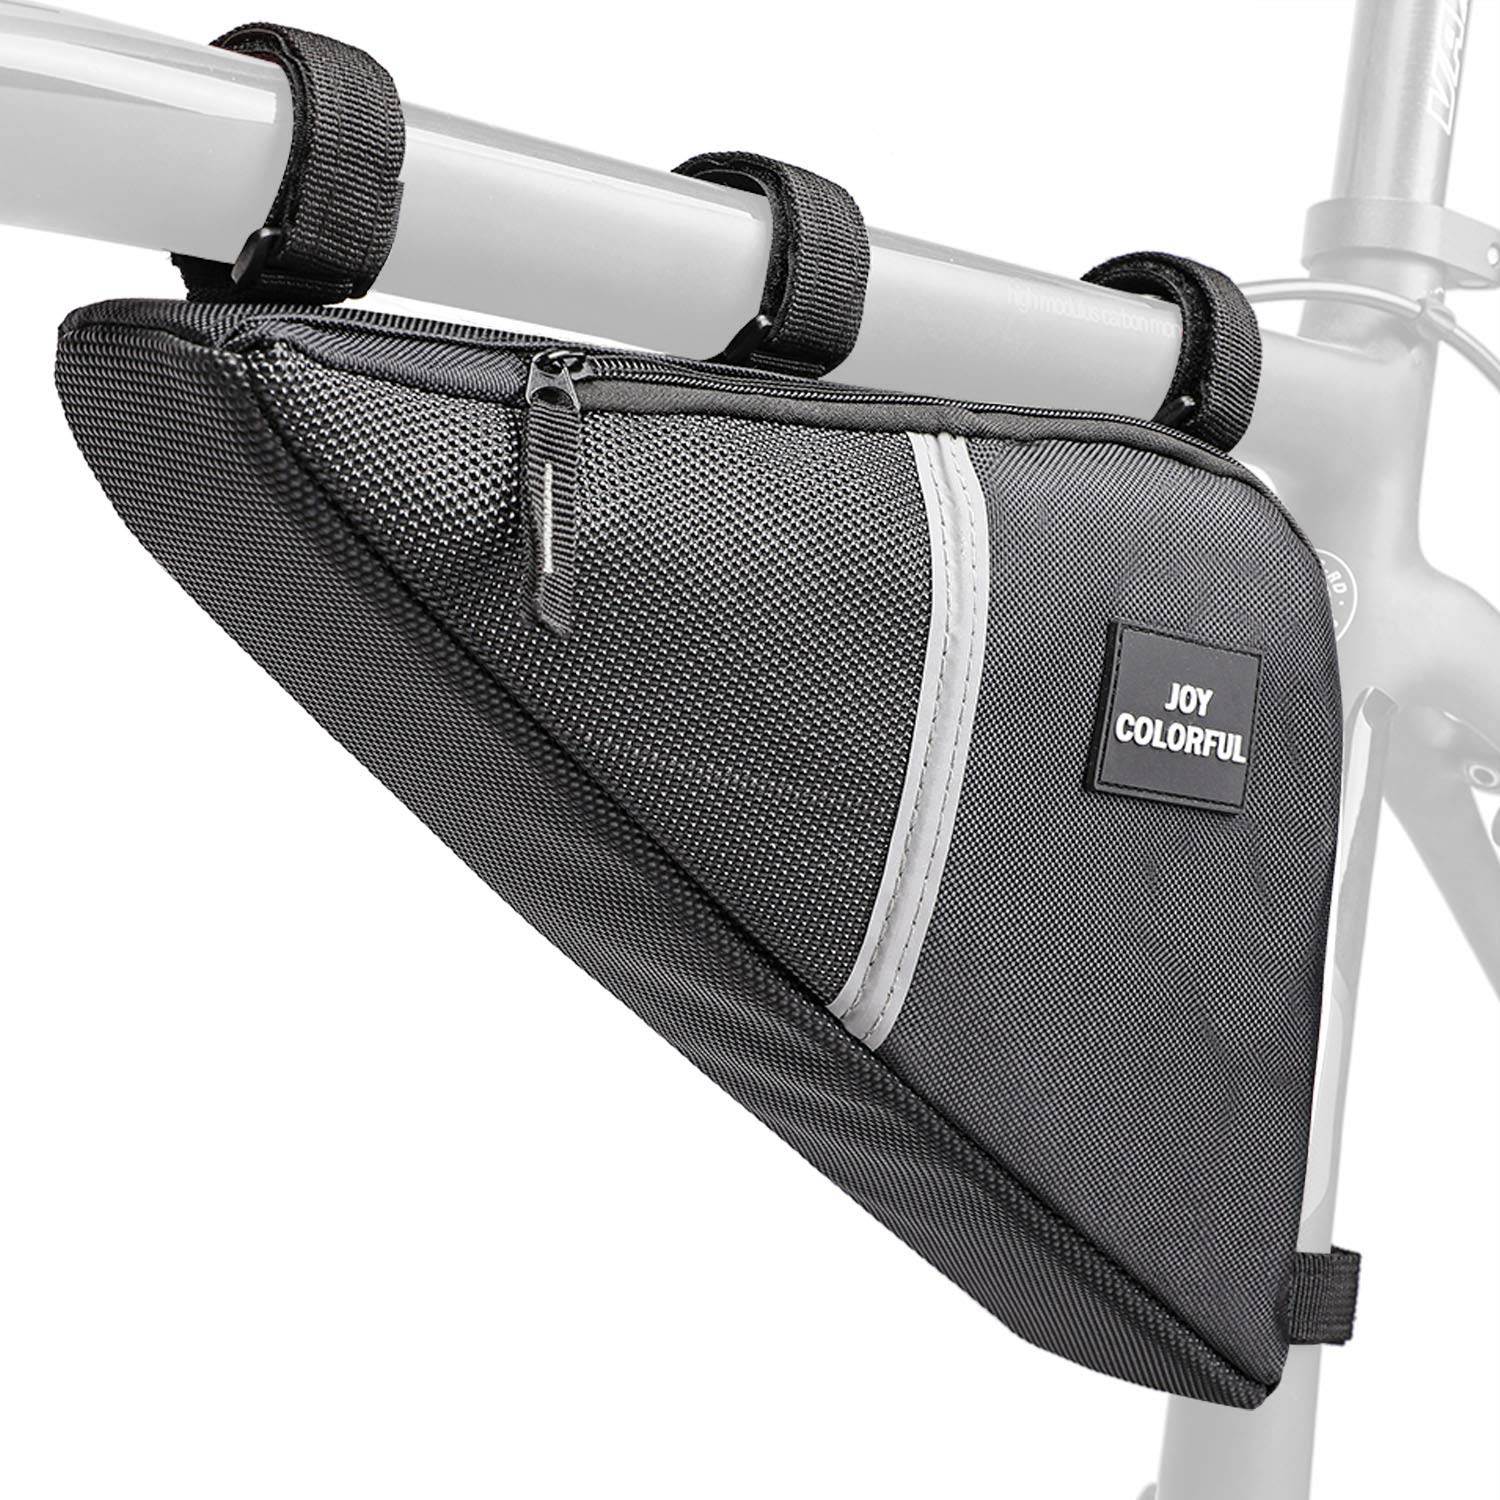 JOY COLORFUL Bicycle Triangle Frame Bag, Waterproof Double Zip Bike Handlebar Bags, Pouch Under Seat PVC Front Tube Frame Bag with Large Storage for Mountain Cycling